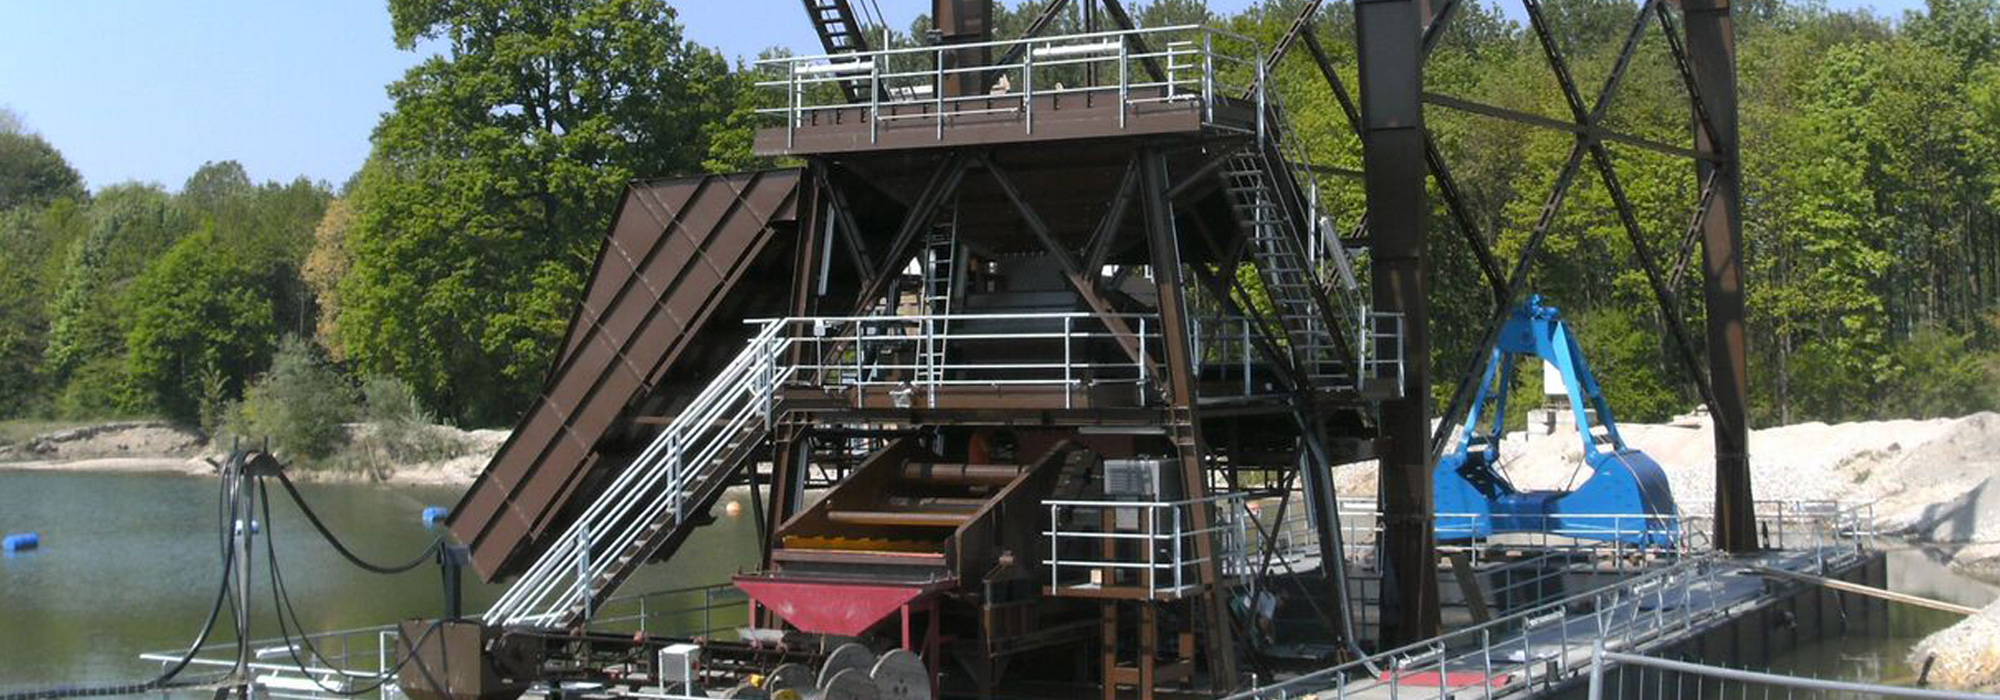 COMPLETE DREDGE SYSTEMS FOR YOUR NEEDSWe offer Clamshell Dredges, Bucketladder Dredges and Floating Conveyor Belt Systems for the Sand & Gravel and Mining industries. Learn More